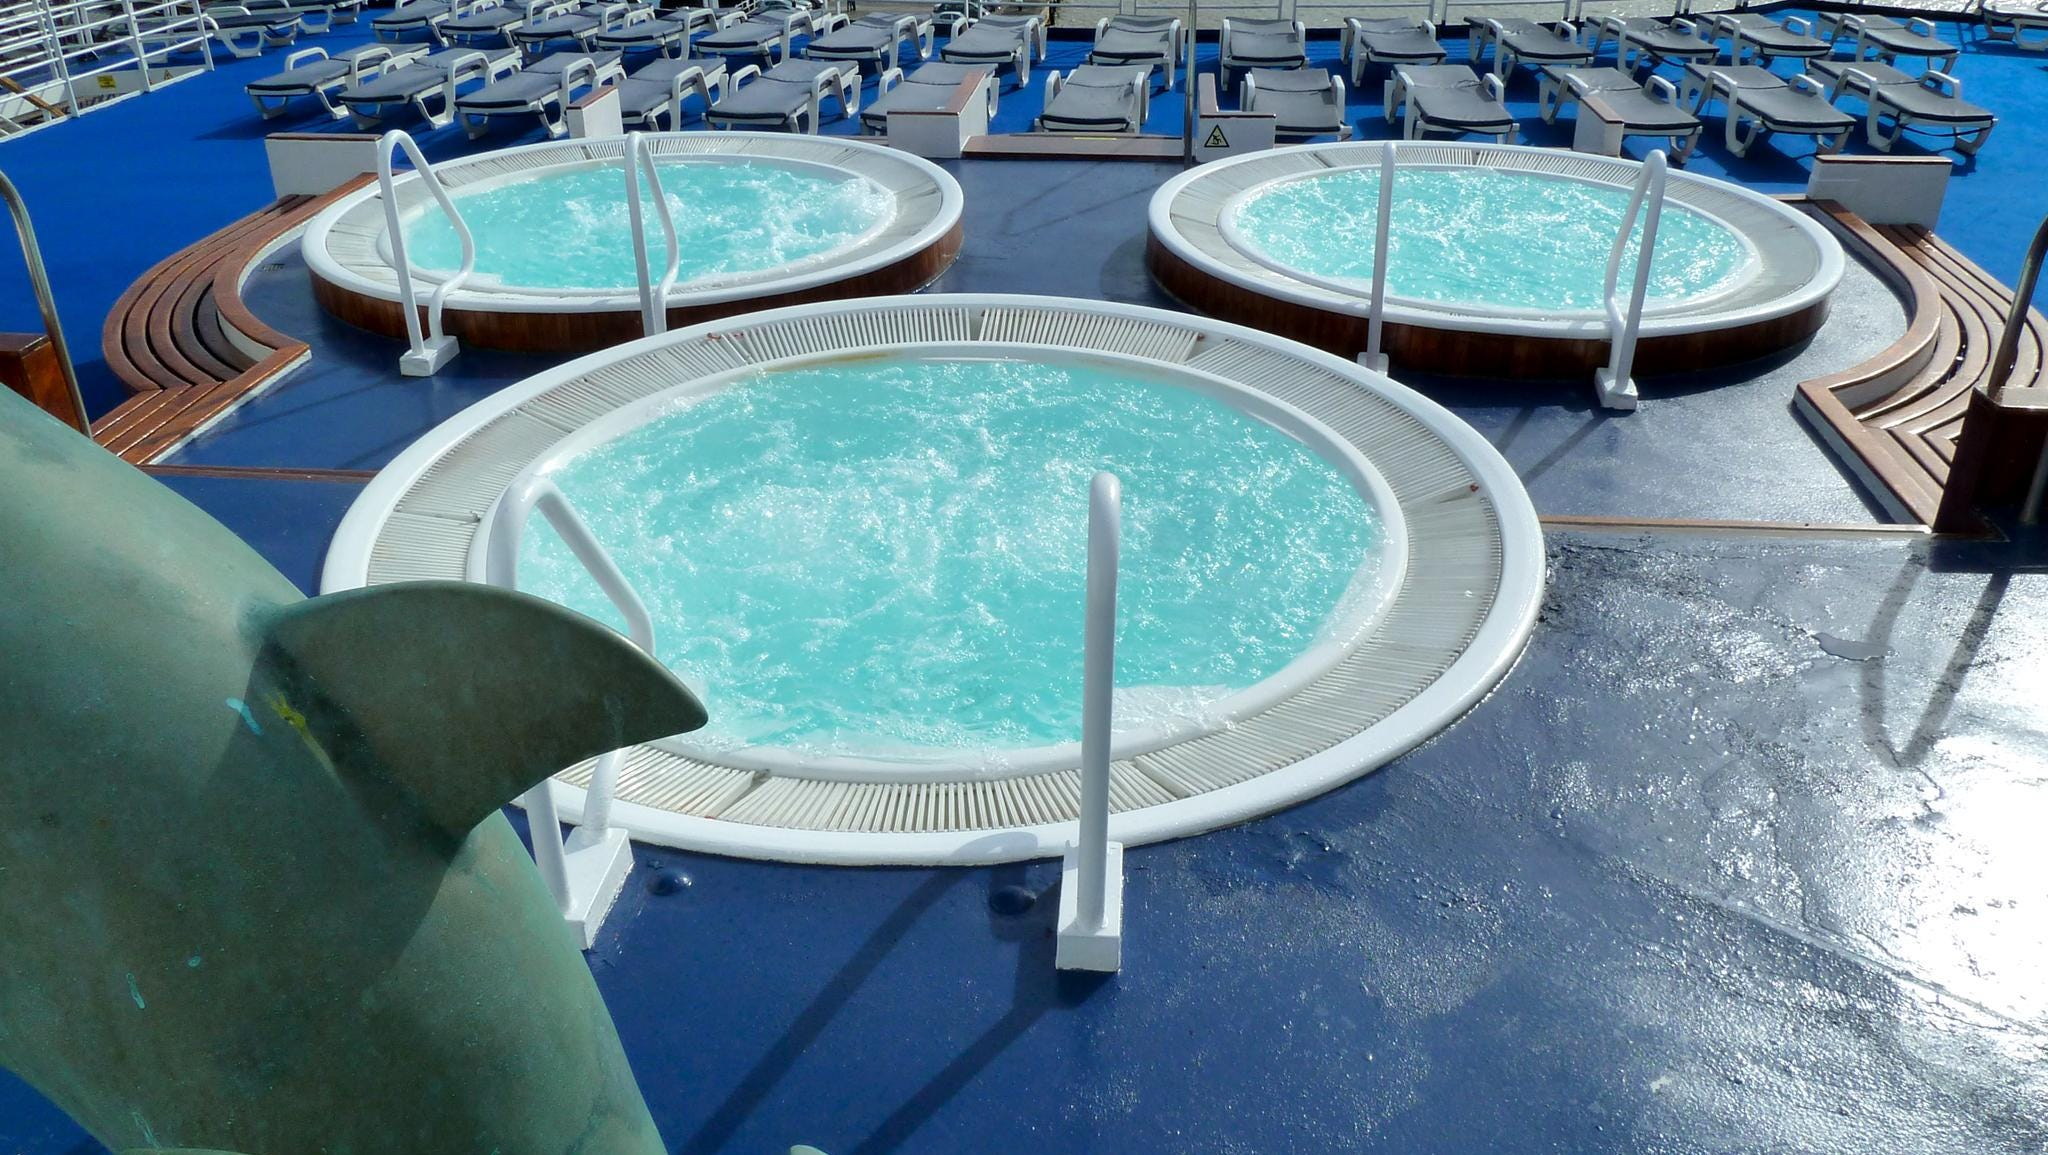 On aft Navigator Deck, overlooking the stern, there is a trio of Jacuzzis.